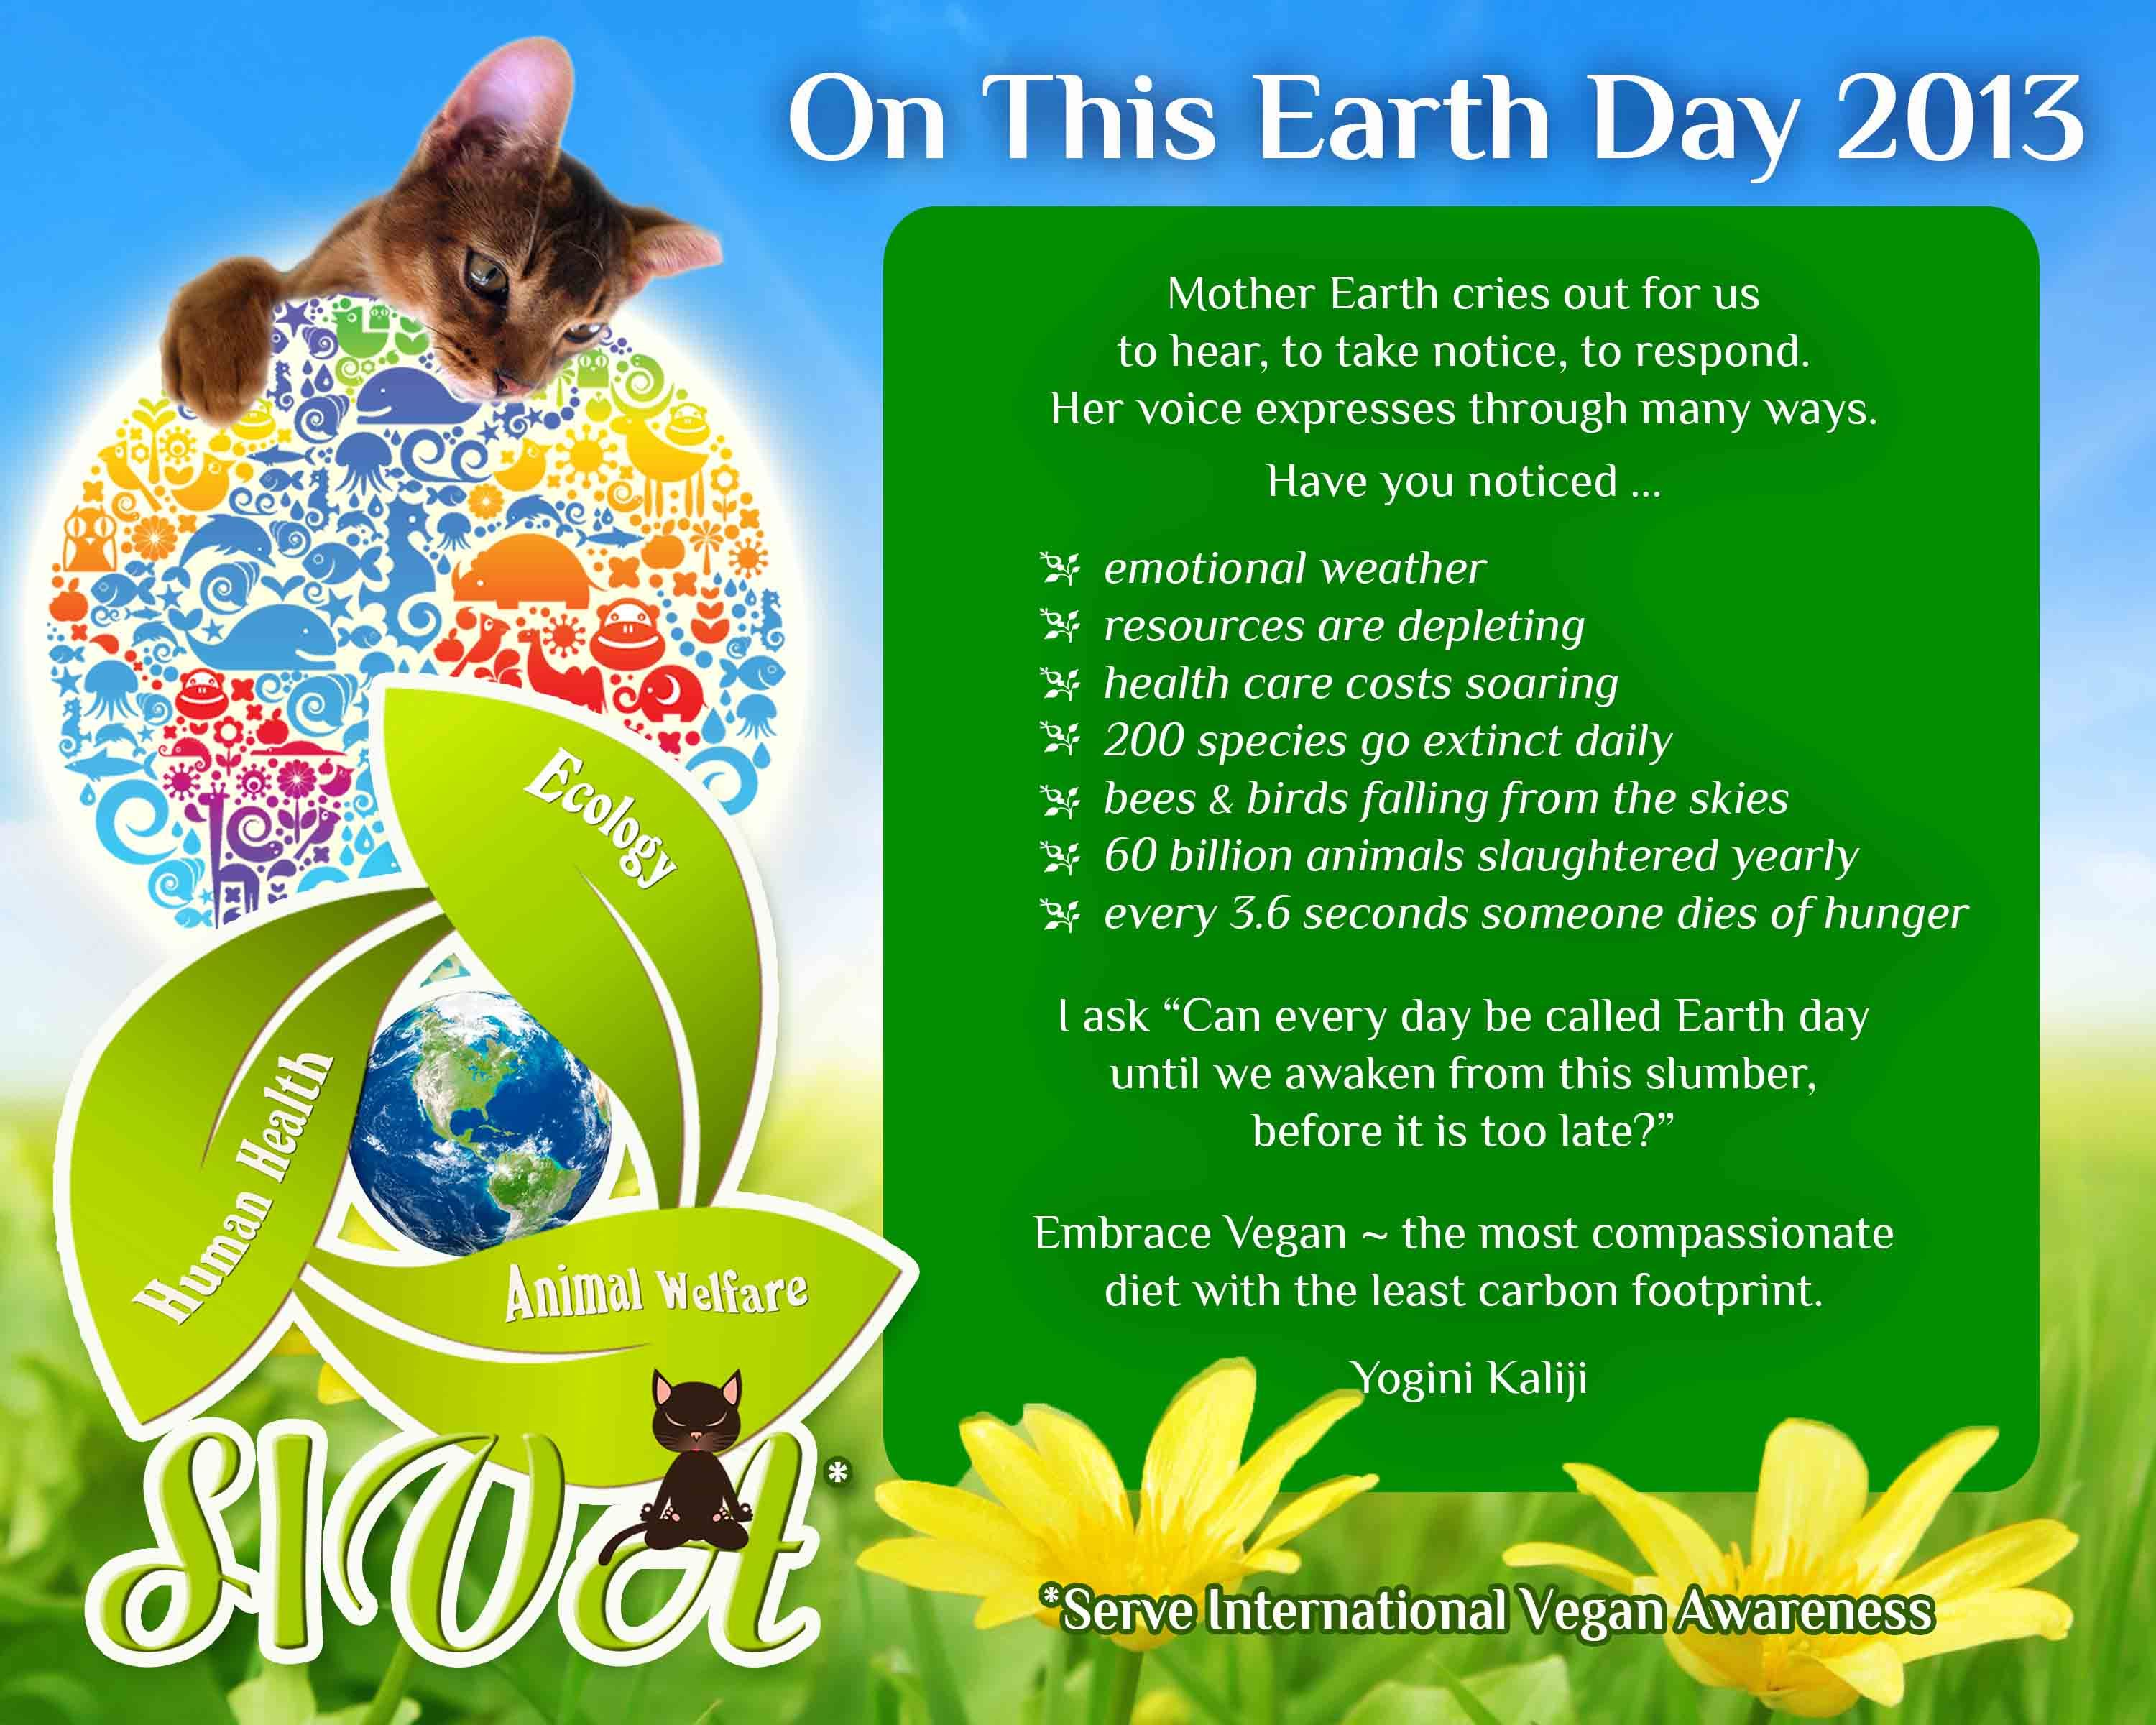 Quote_KJI_Earth_Day_2013